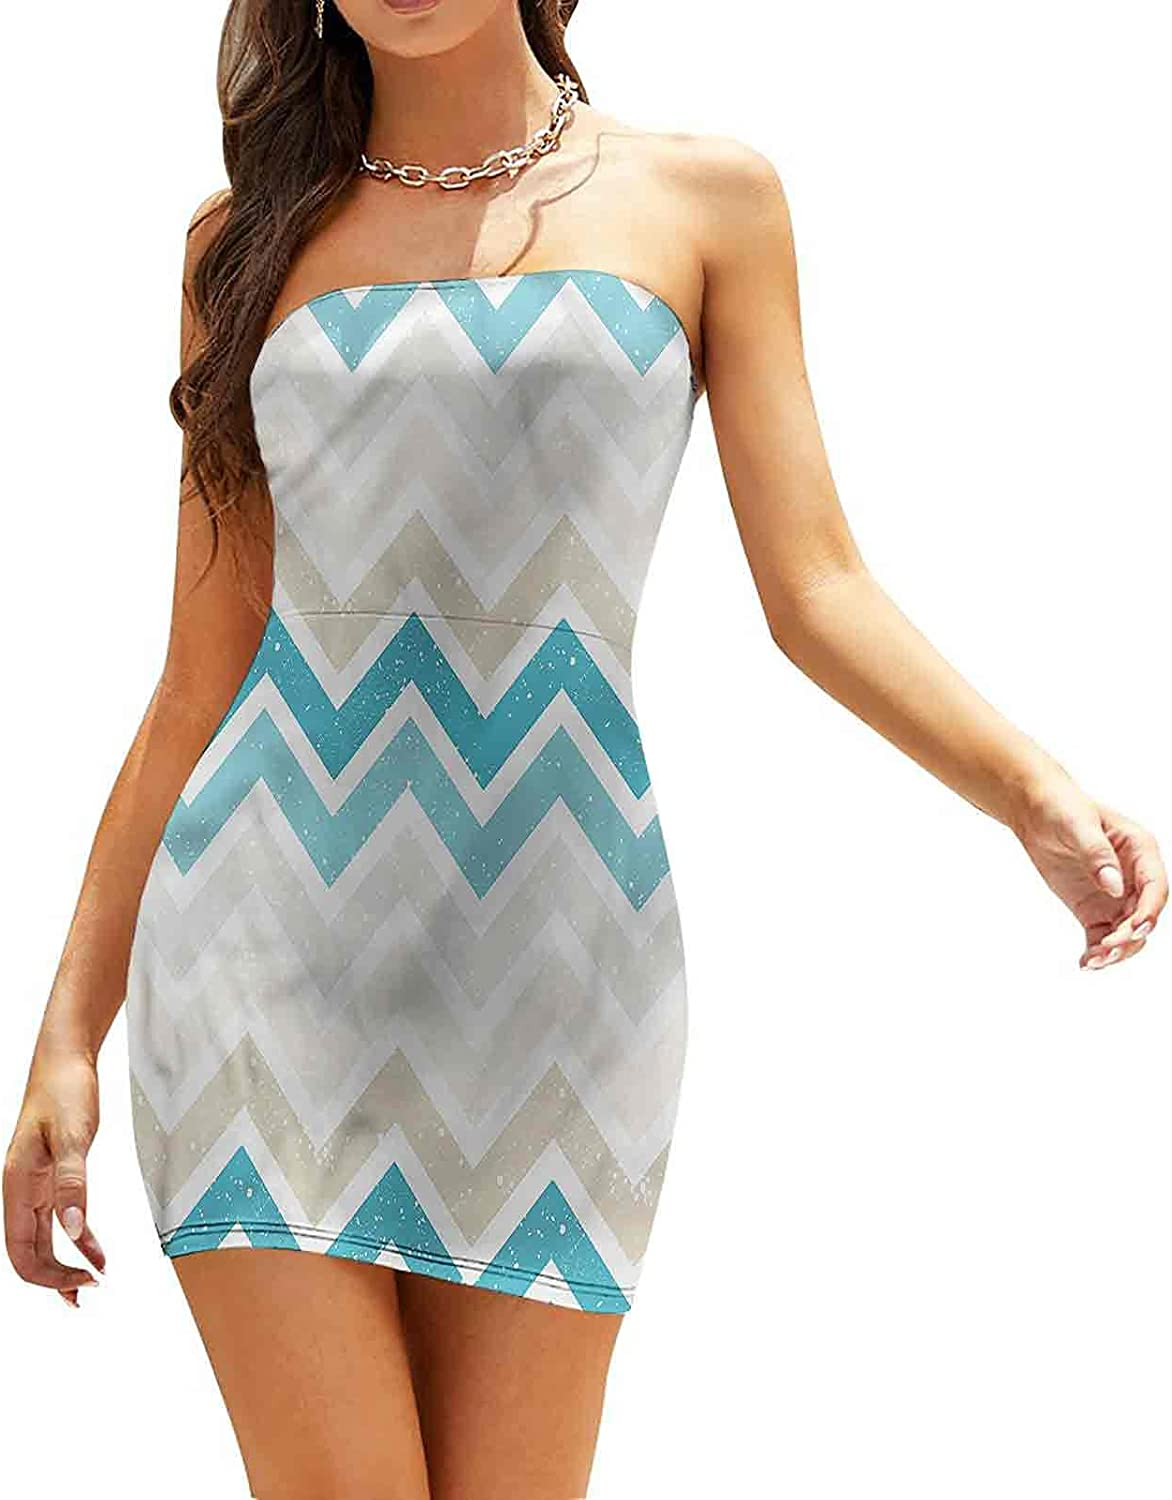 Women's Sleeveless Sexy Tube Top Dress Early Morning Sky in Blue Dresses